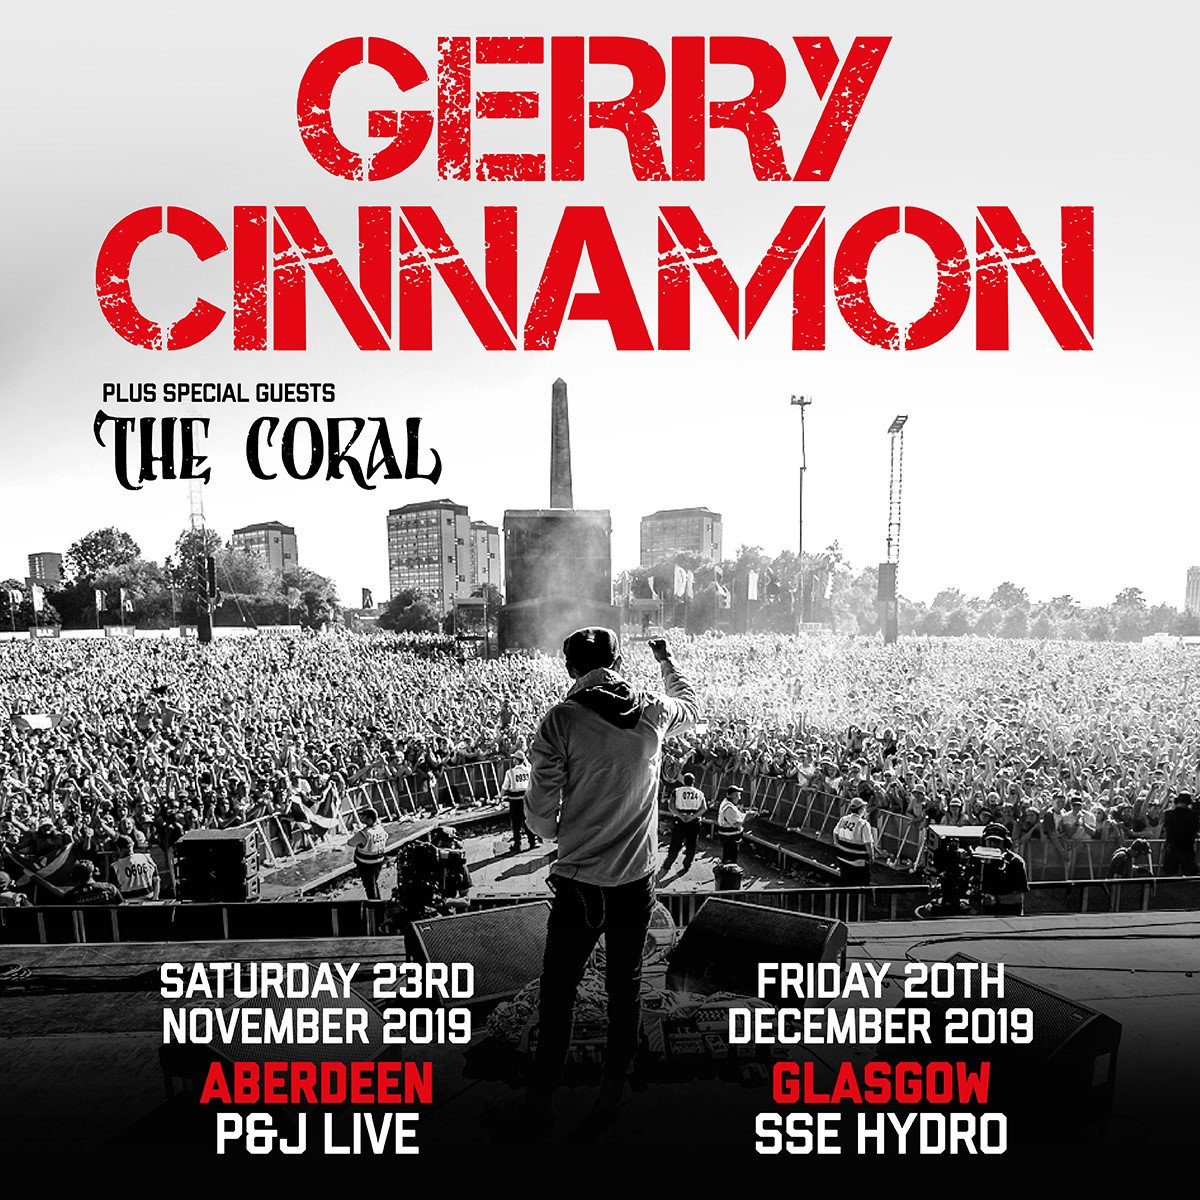 Happening Scotland 🙋♂️ New tour dates announced - Also wee gig on the green tonight - 7.30pm Cheers x ____________________ Pre-sale Wed 9am  General sale Friday 9am Names on ticks. 4 pp. Read T&Cs. Sign up for pre-sale access now - http://www.gerrycinnamonmusic.com